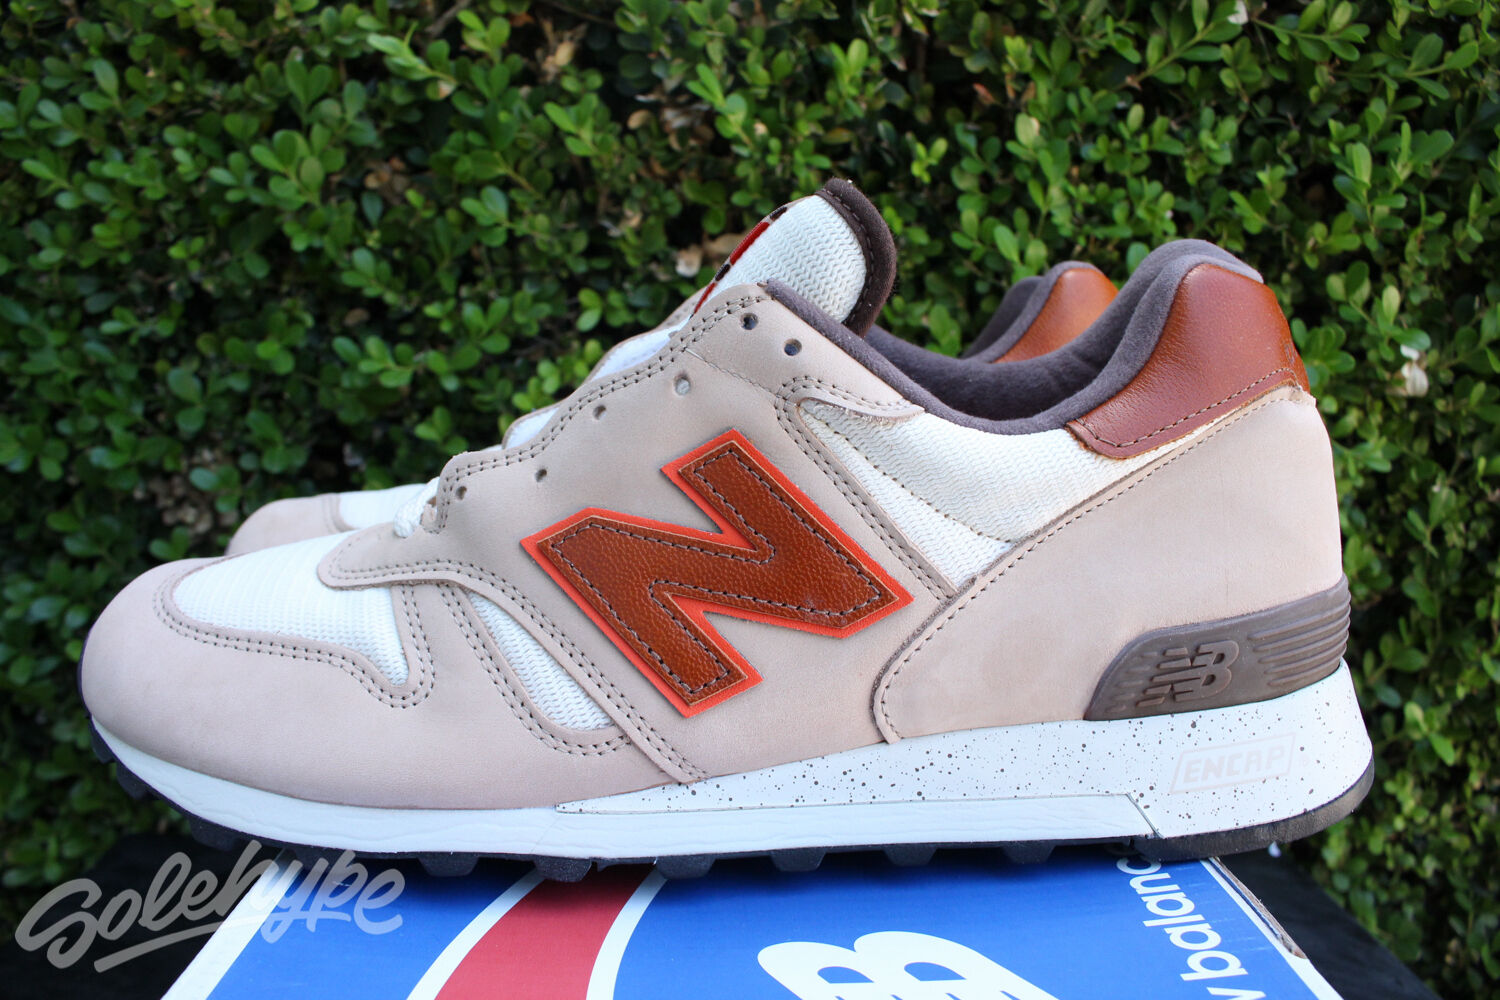 NEW BALANCE 1300 SZ 7 WHITE MADE SAND RED NATIONAL PARKS MADE WHITE IN USA M1300GB 37c4fd